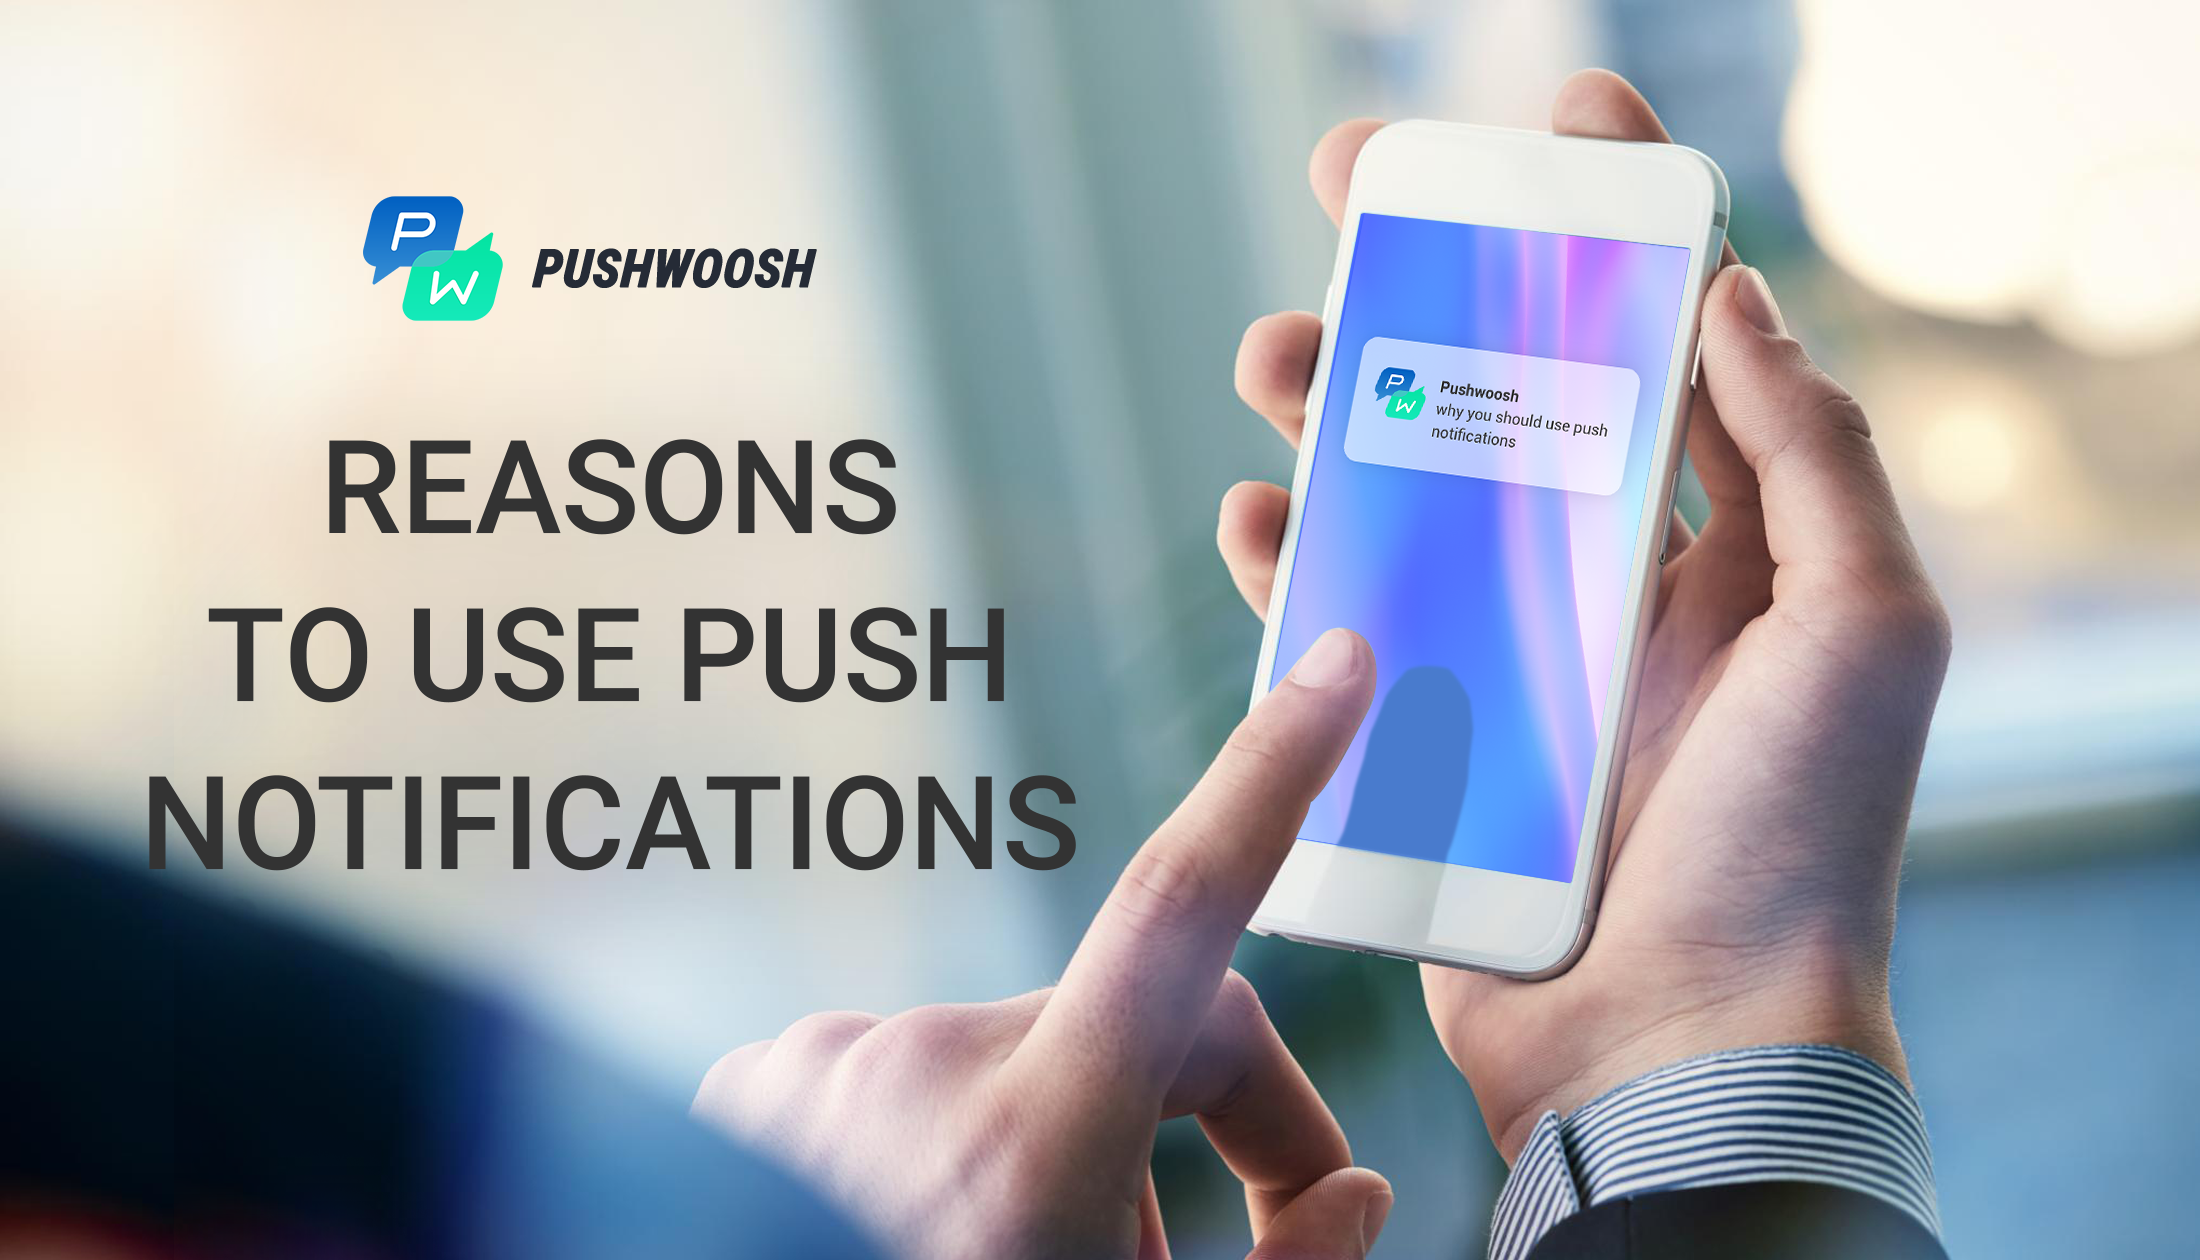 5 Reasons Why Your Business Should Use Push Notifications